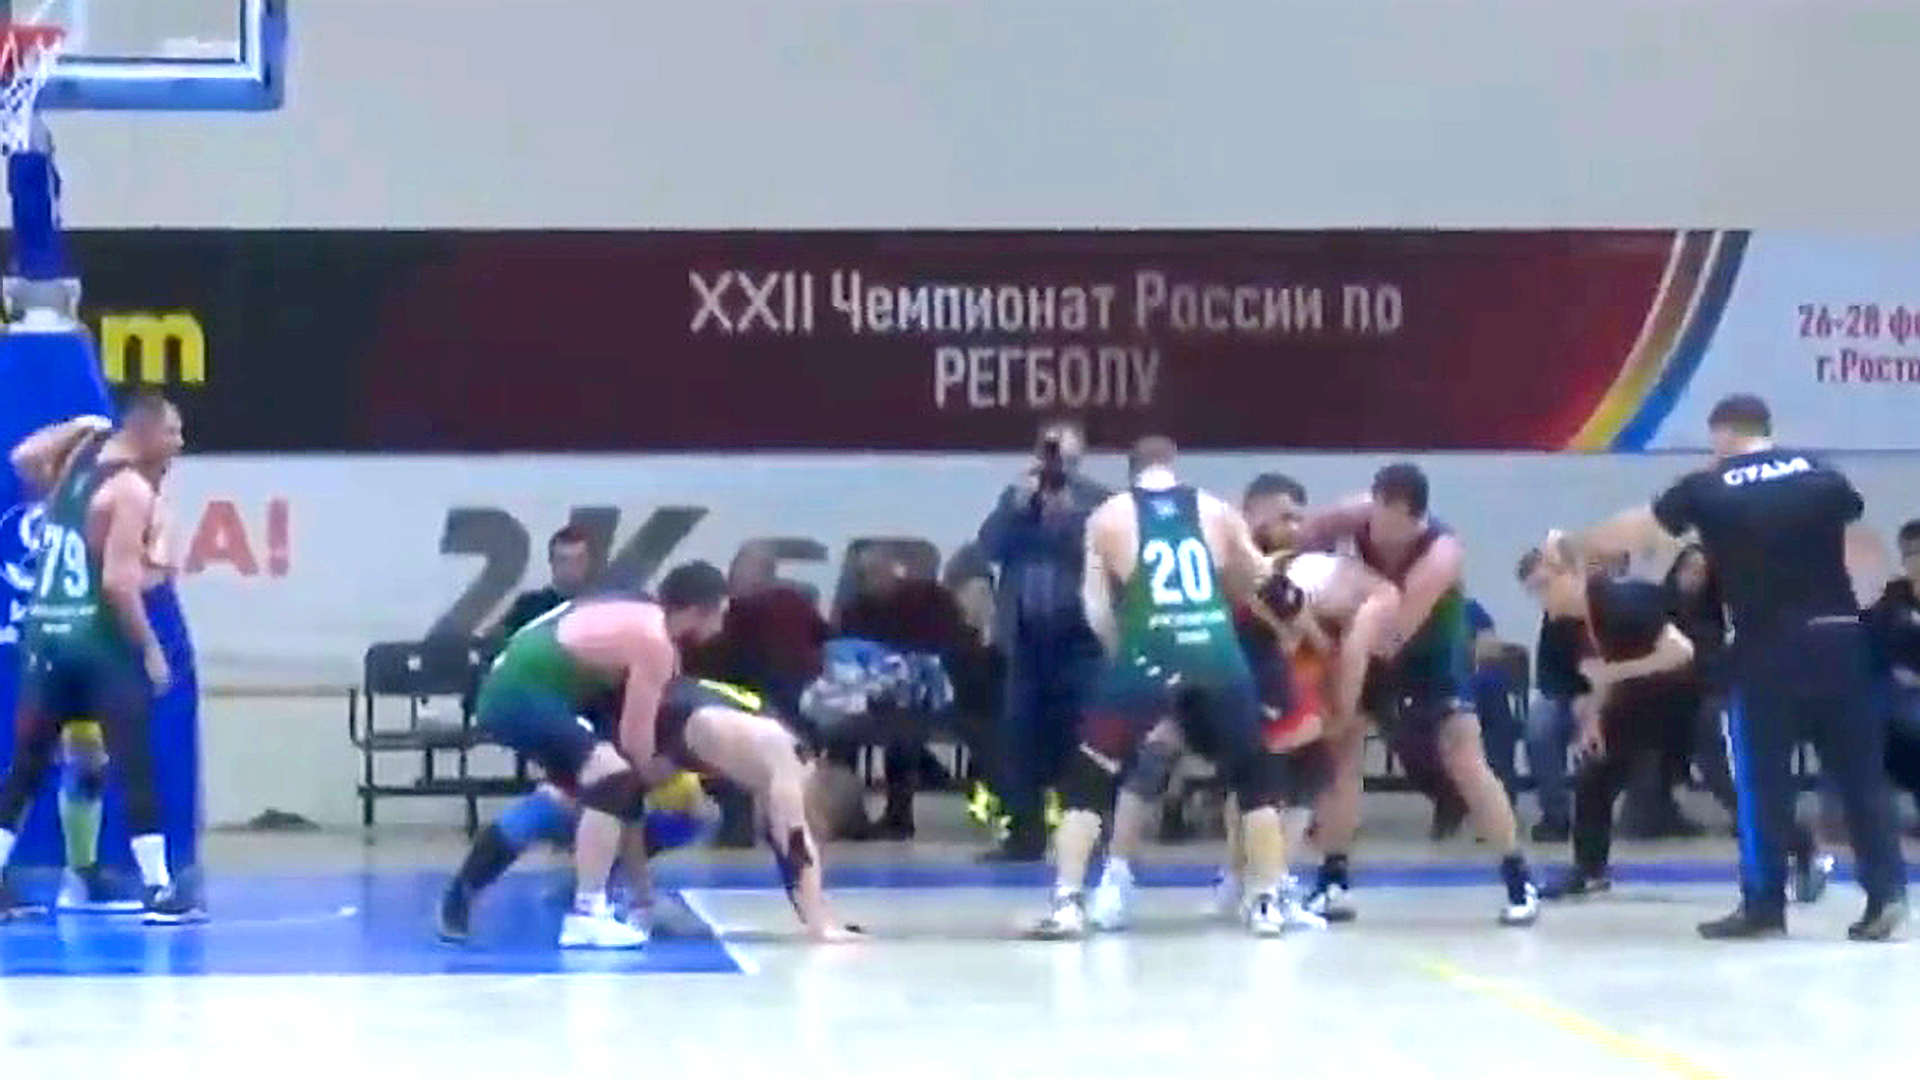 VIDEO: Burly Russian Men Play Sport With Mix Of Wrestling, Basketball And Rugby Called Regball